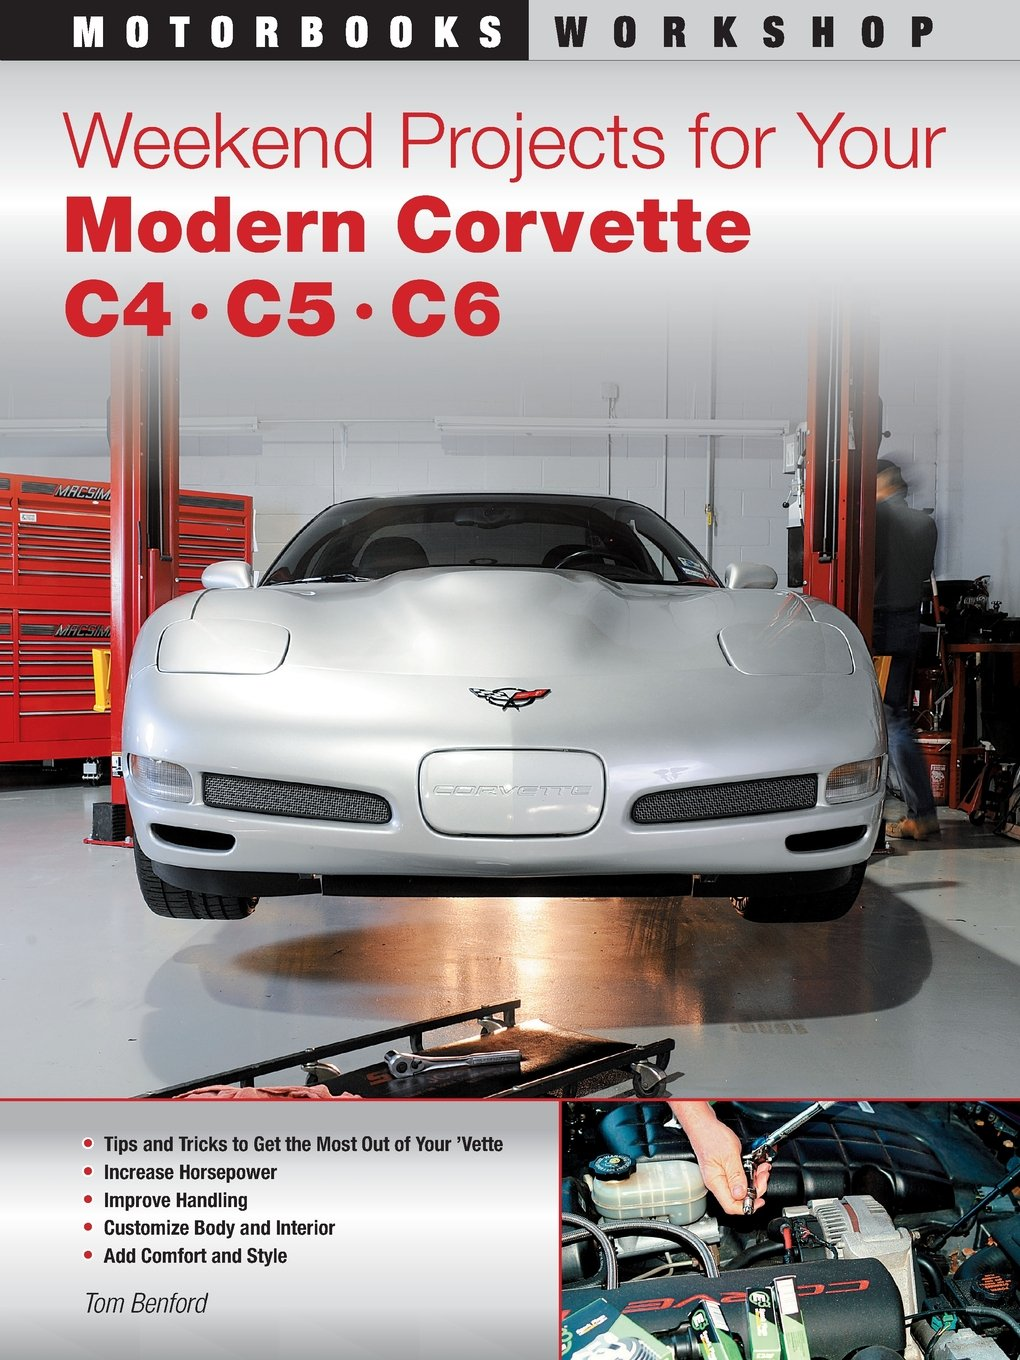 Weekend Projects For Your Modern Corvette C4 C5 C6 Motorbooks Painted Fuse Box Cover Workshop Tom Benford 9780760335406 Books